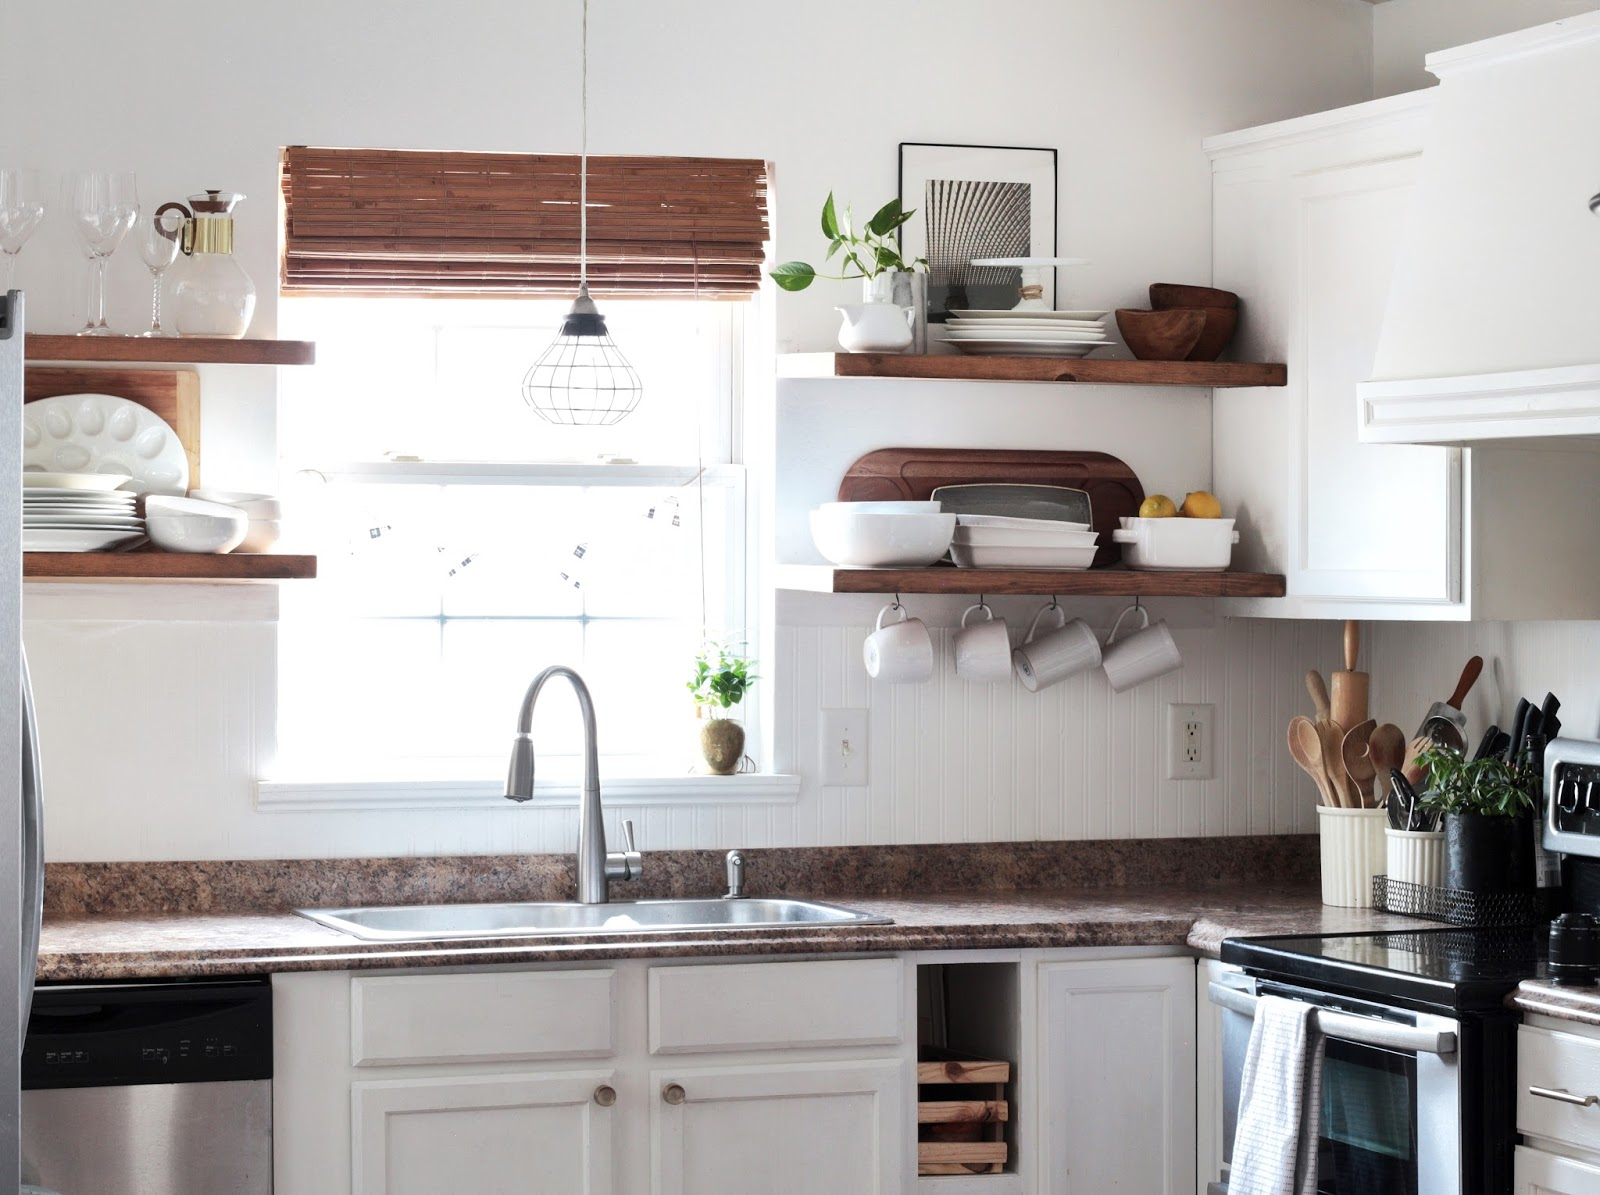 made carli diy kitchen how install floating shelves with open using little over three years ago removed most upper cabinets and installed shelving our was one favorite updates